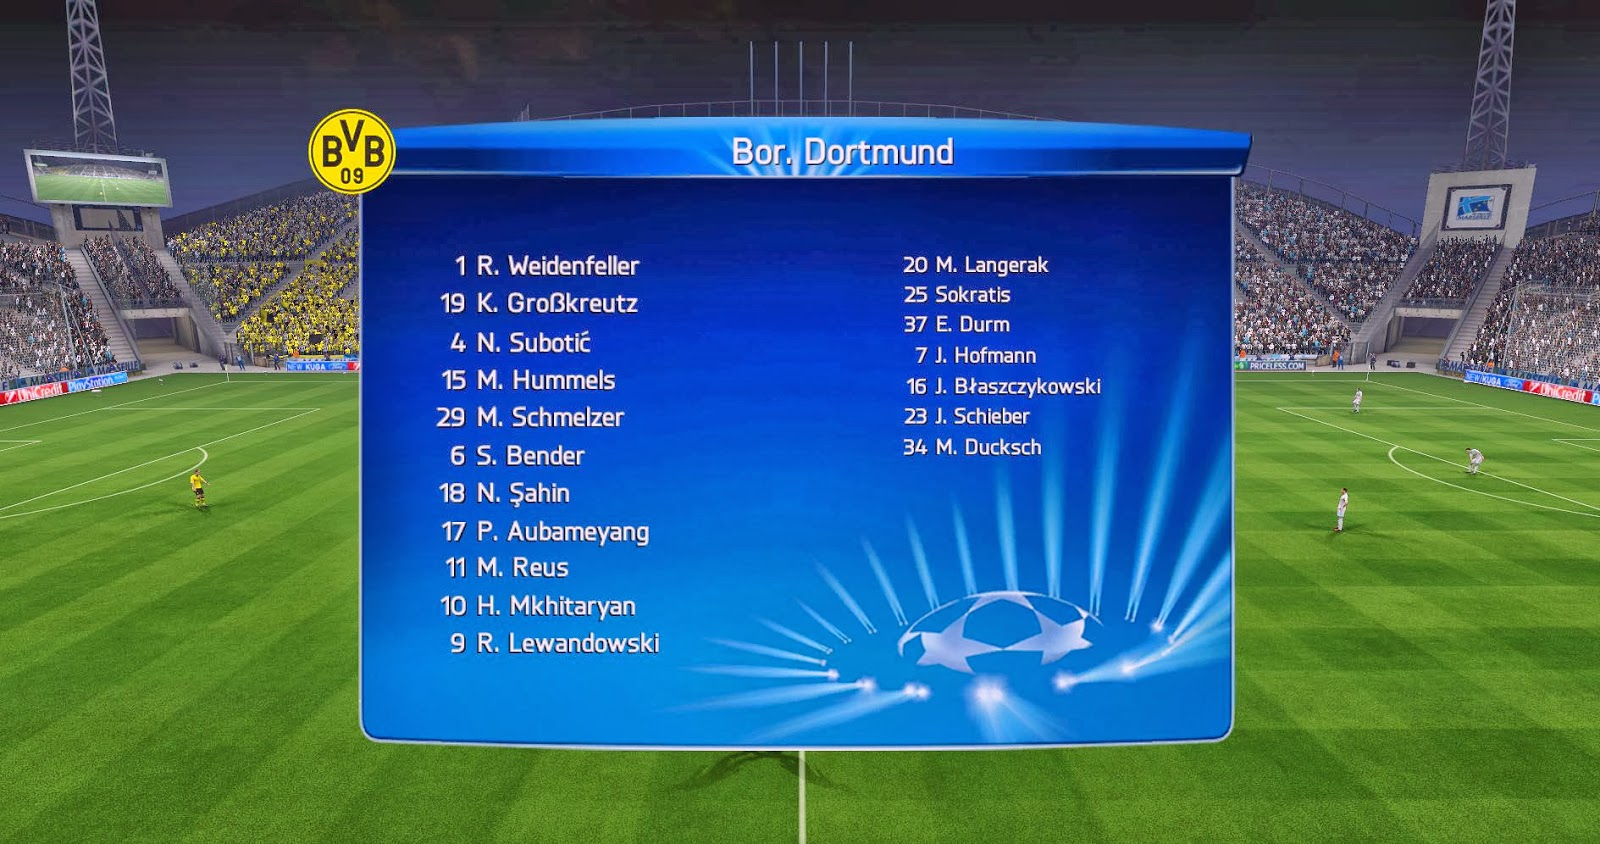 Adboards Uefa Champions League 14 15 Fifa 14 (10) - EpicGaming